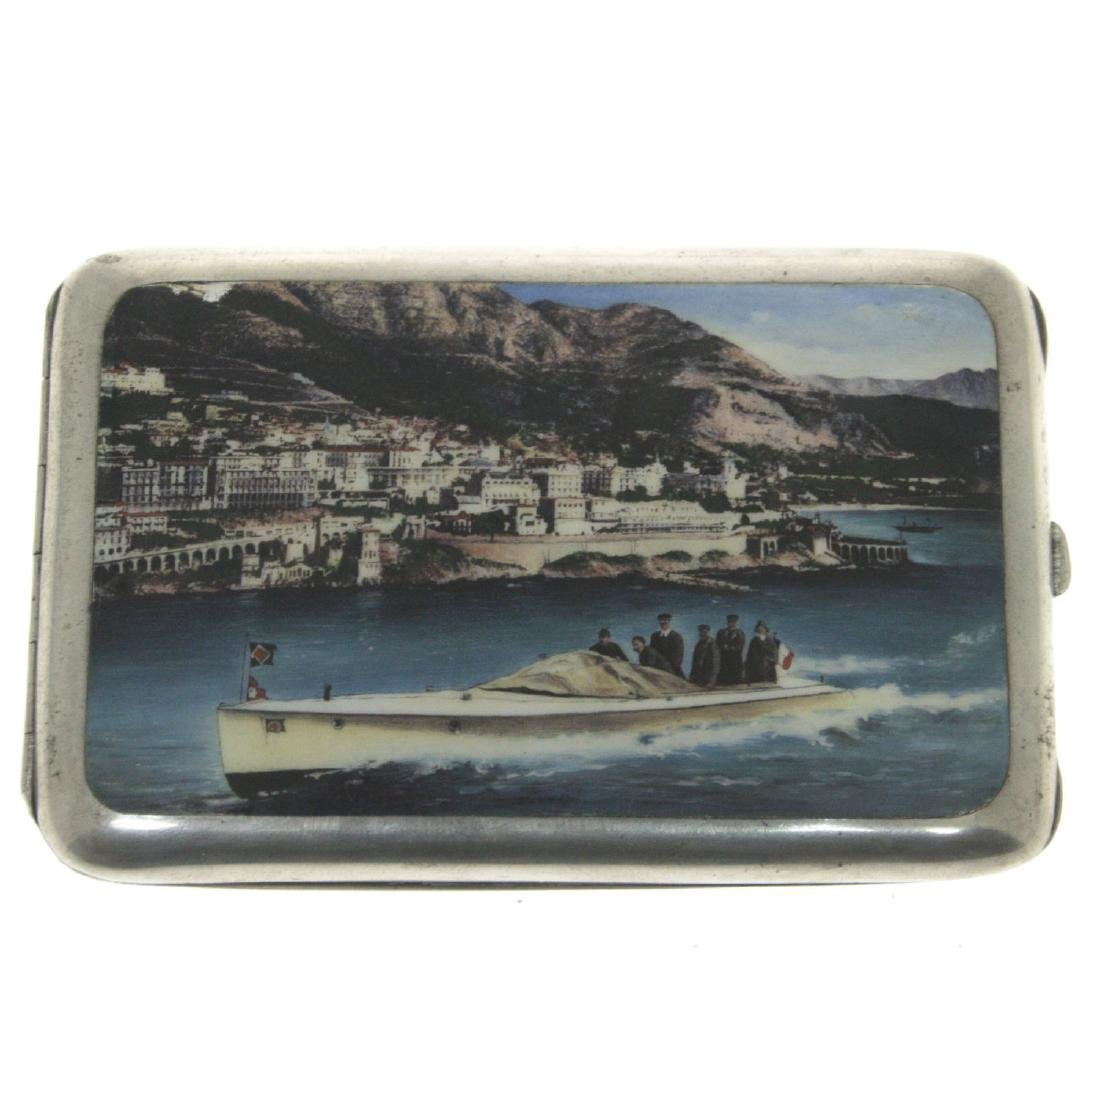 Silver and Enamel Cigarette Case, Germany, Early 20th